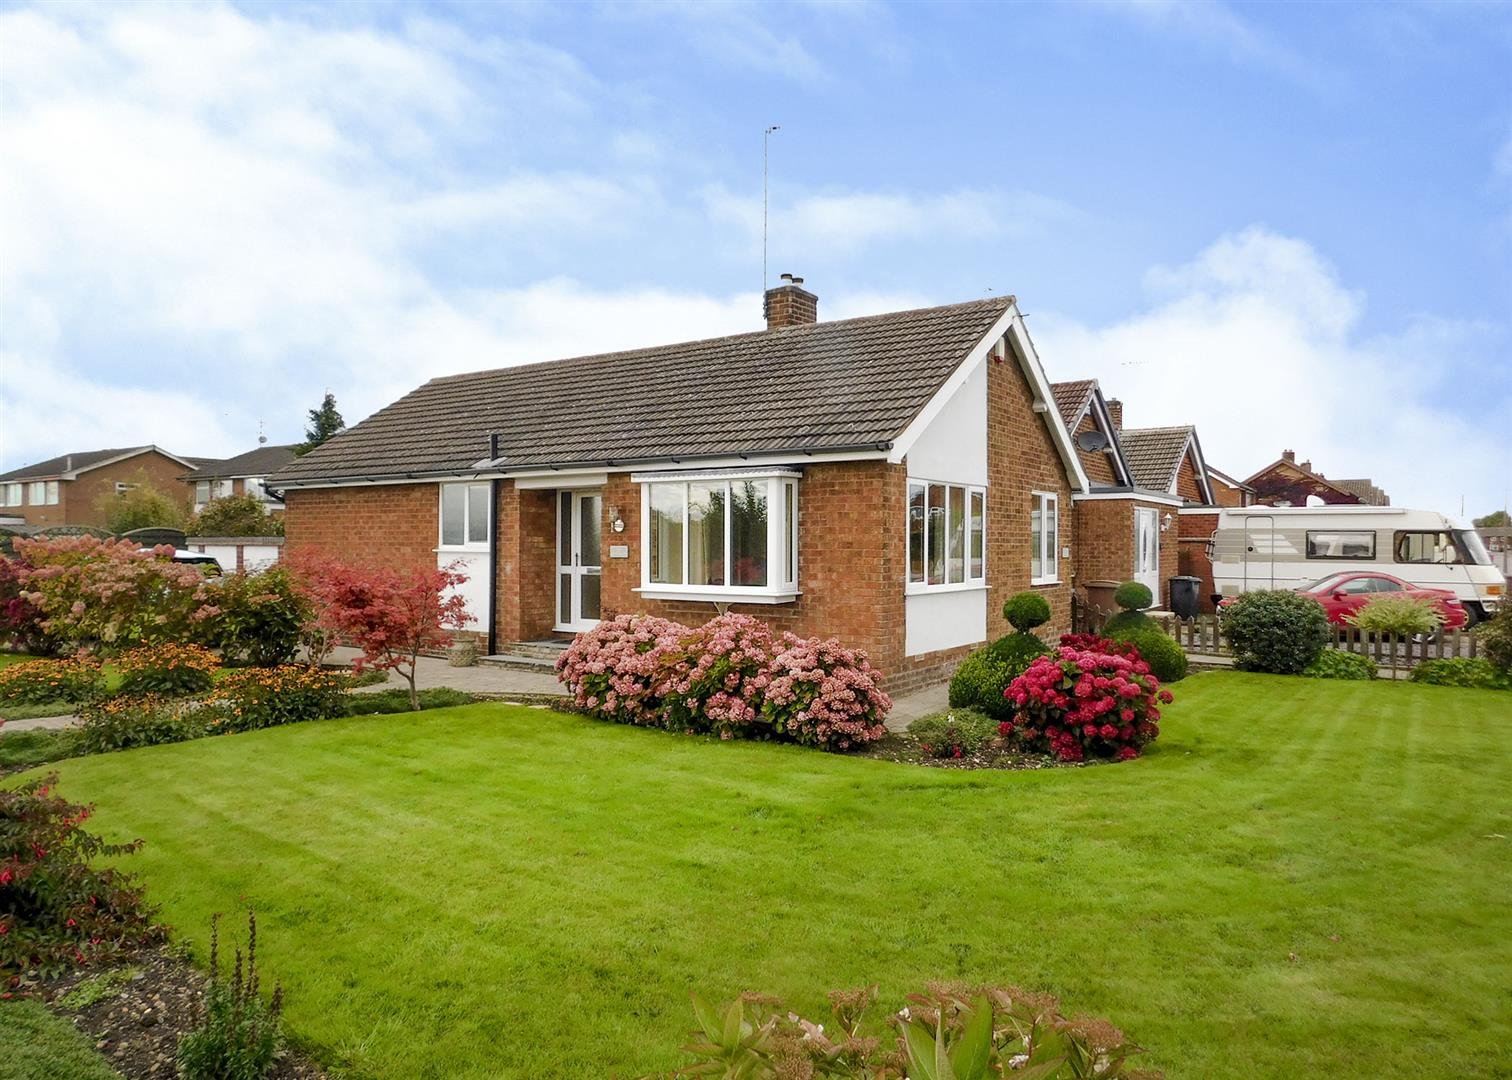 2 Bedrooms Detached Bungalow for sale in Wilne Road, Sawley